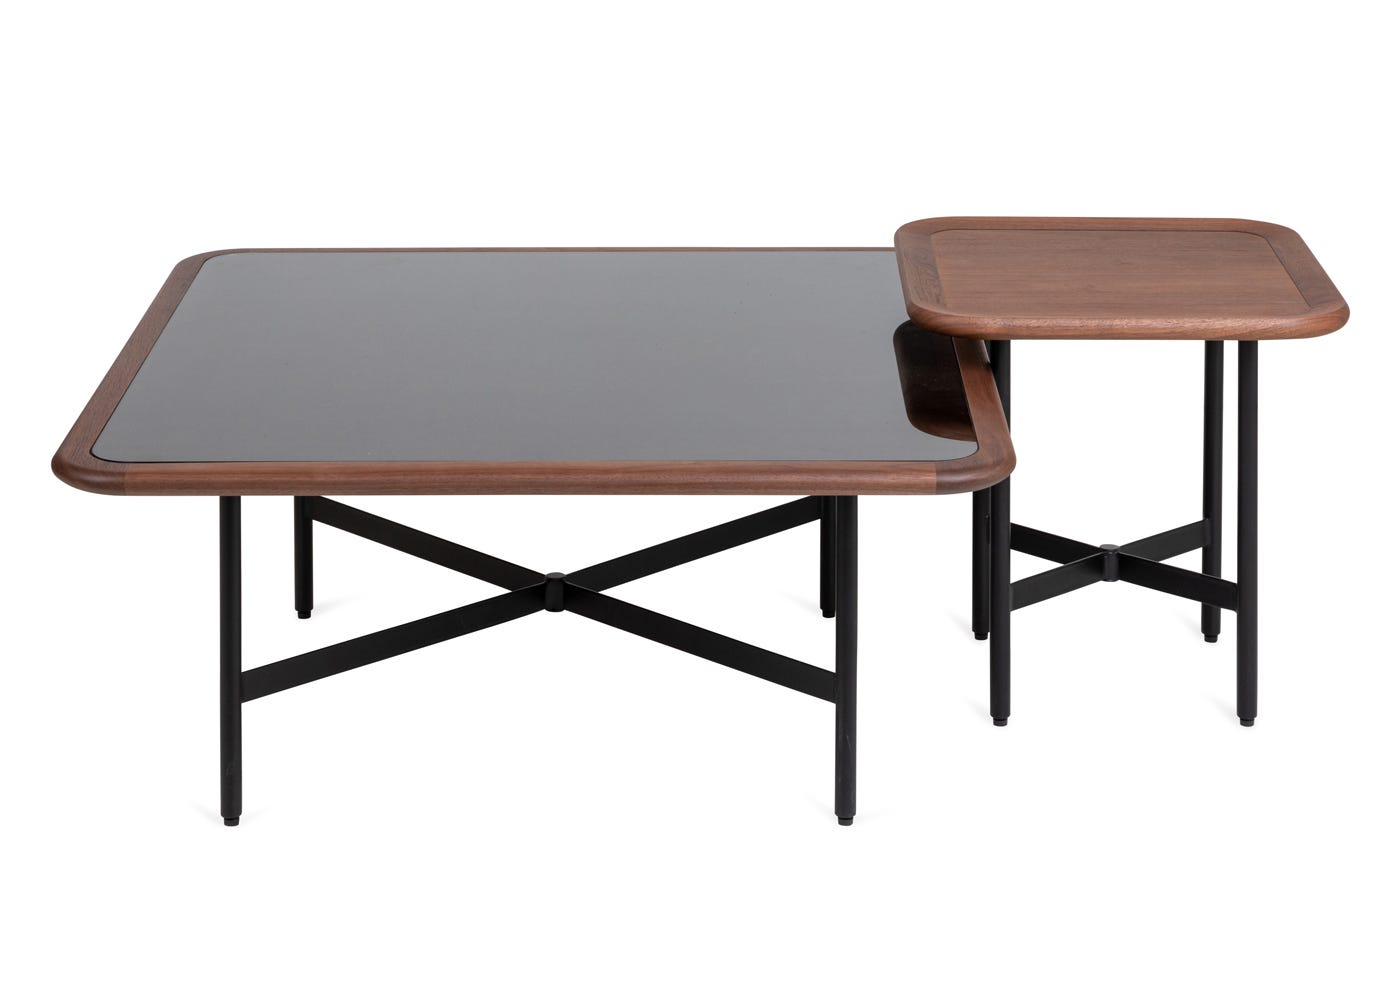 As shown: Emerson square coffee table stacked with Emerson side table.